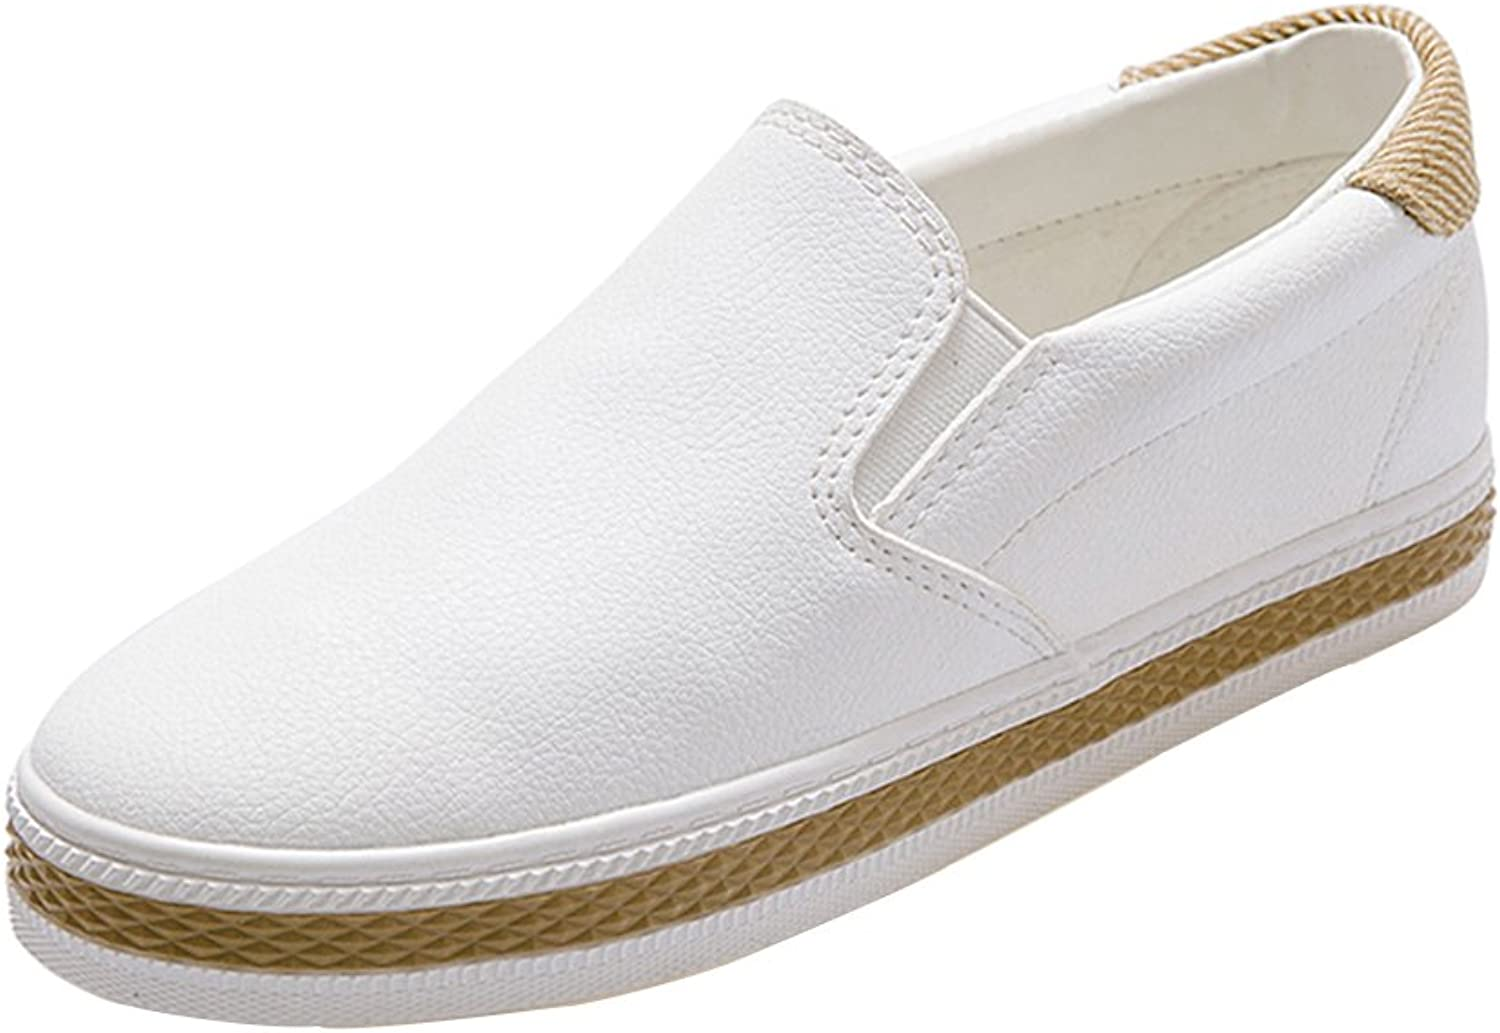 Kyle Walsh Pa Women's Classic Slip On Sneakers Platform Casual Loafers